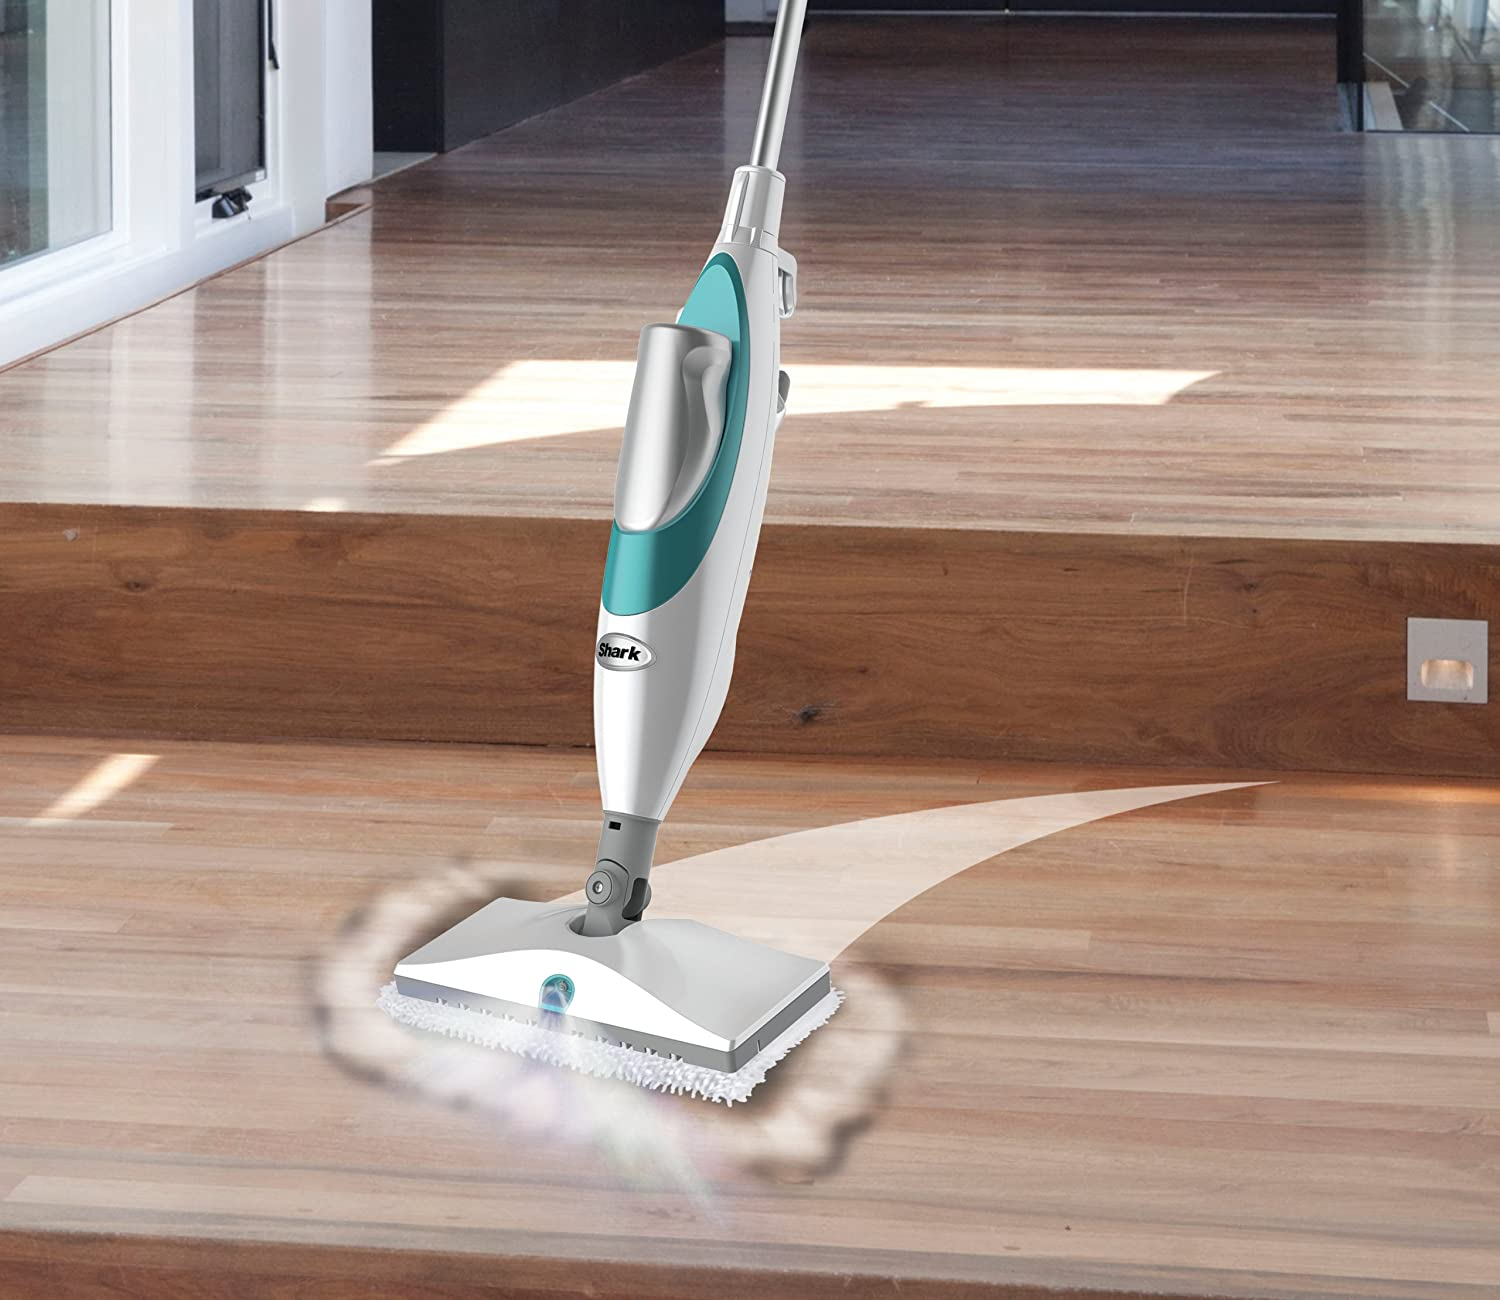 Best spray mop 2018 reviews ultimate buying guide shark steam and spray mop dailygadgetfo Choice Image